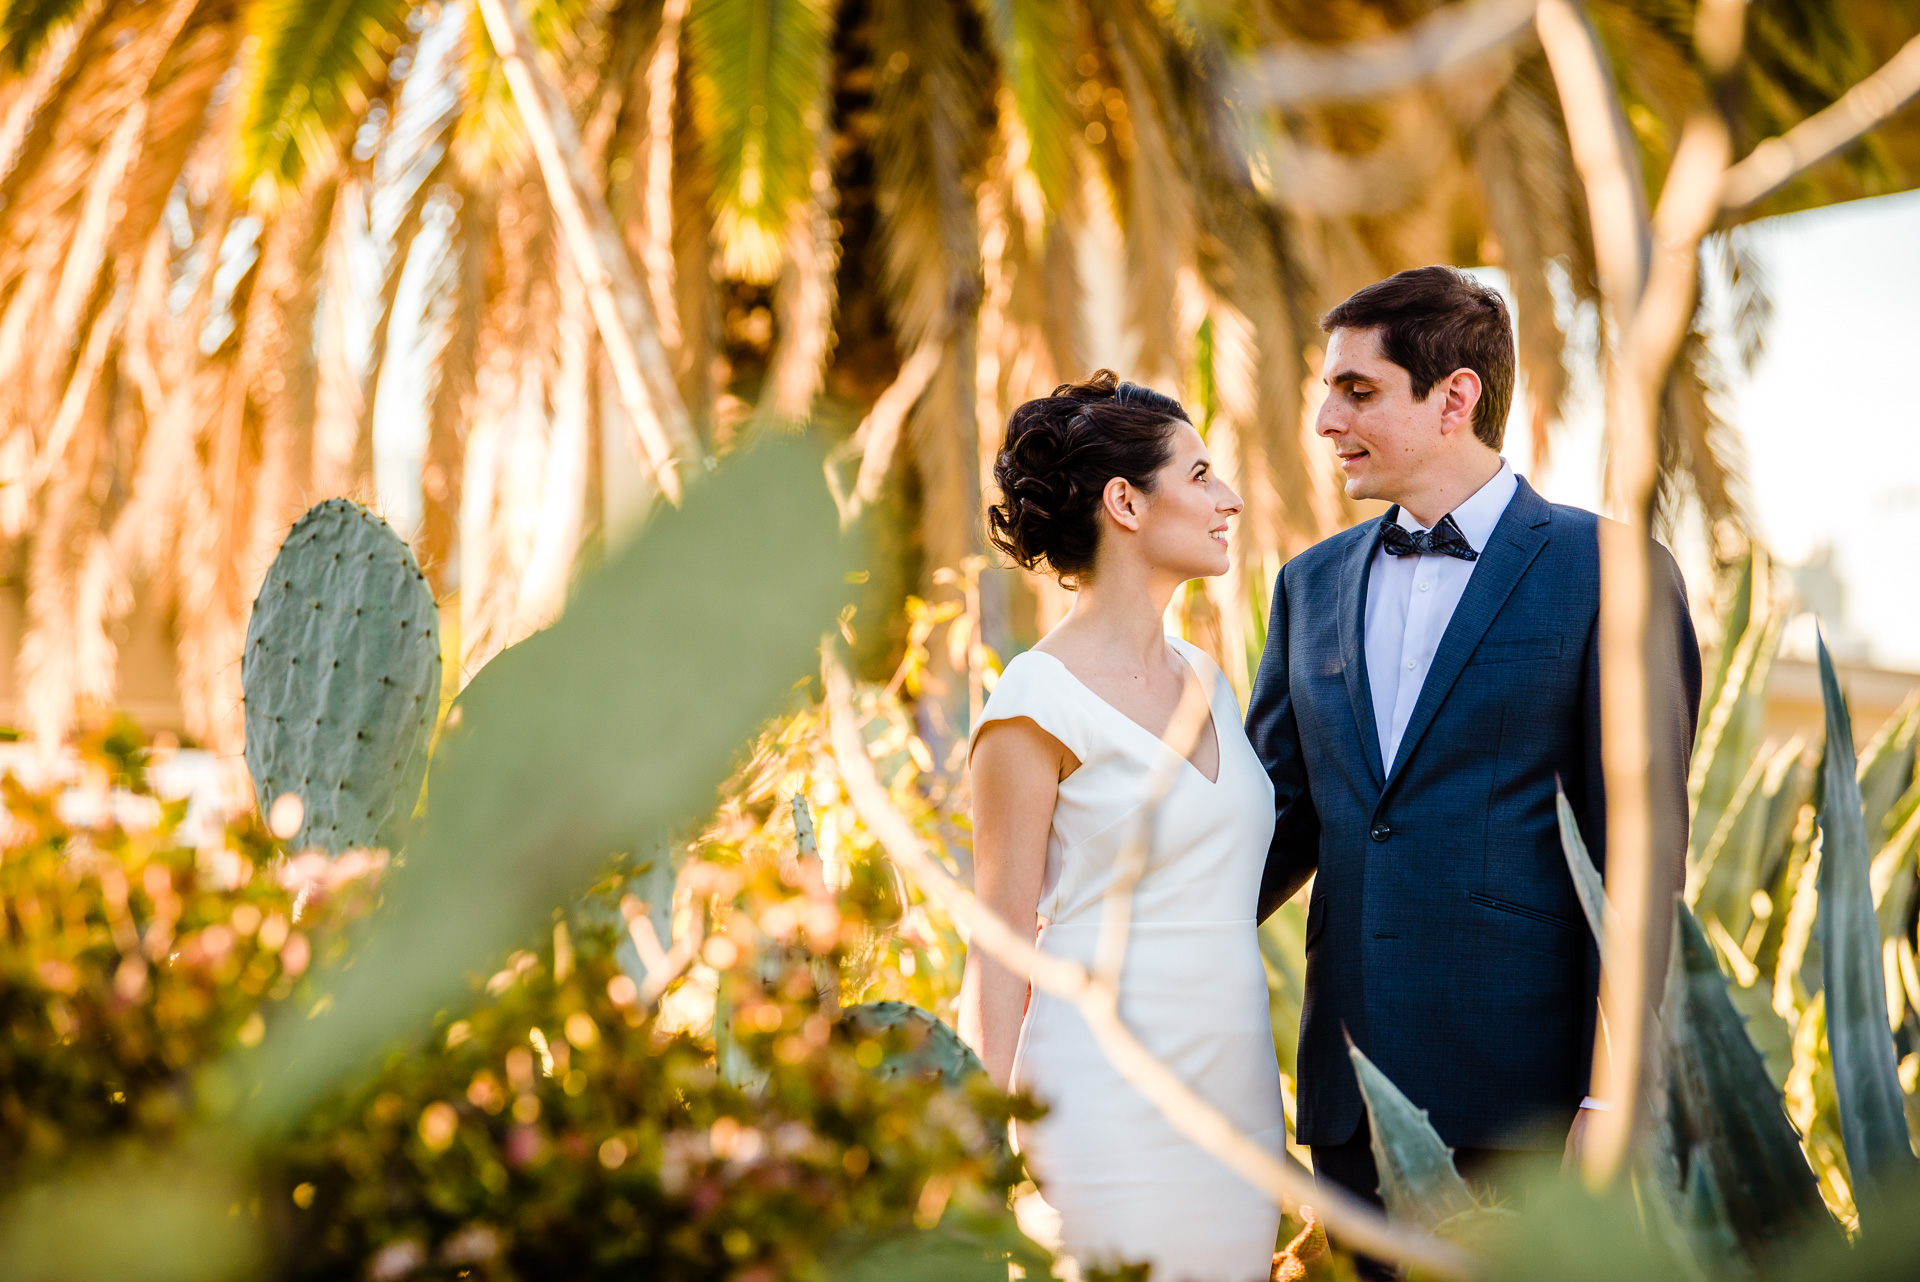 12.29.17 - Michelle and Tommaso Wedding - San Diego Courthouse -  Paul Douda Photography - 064.jpg